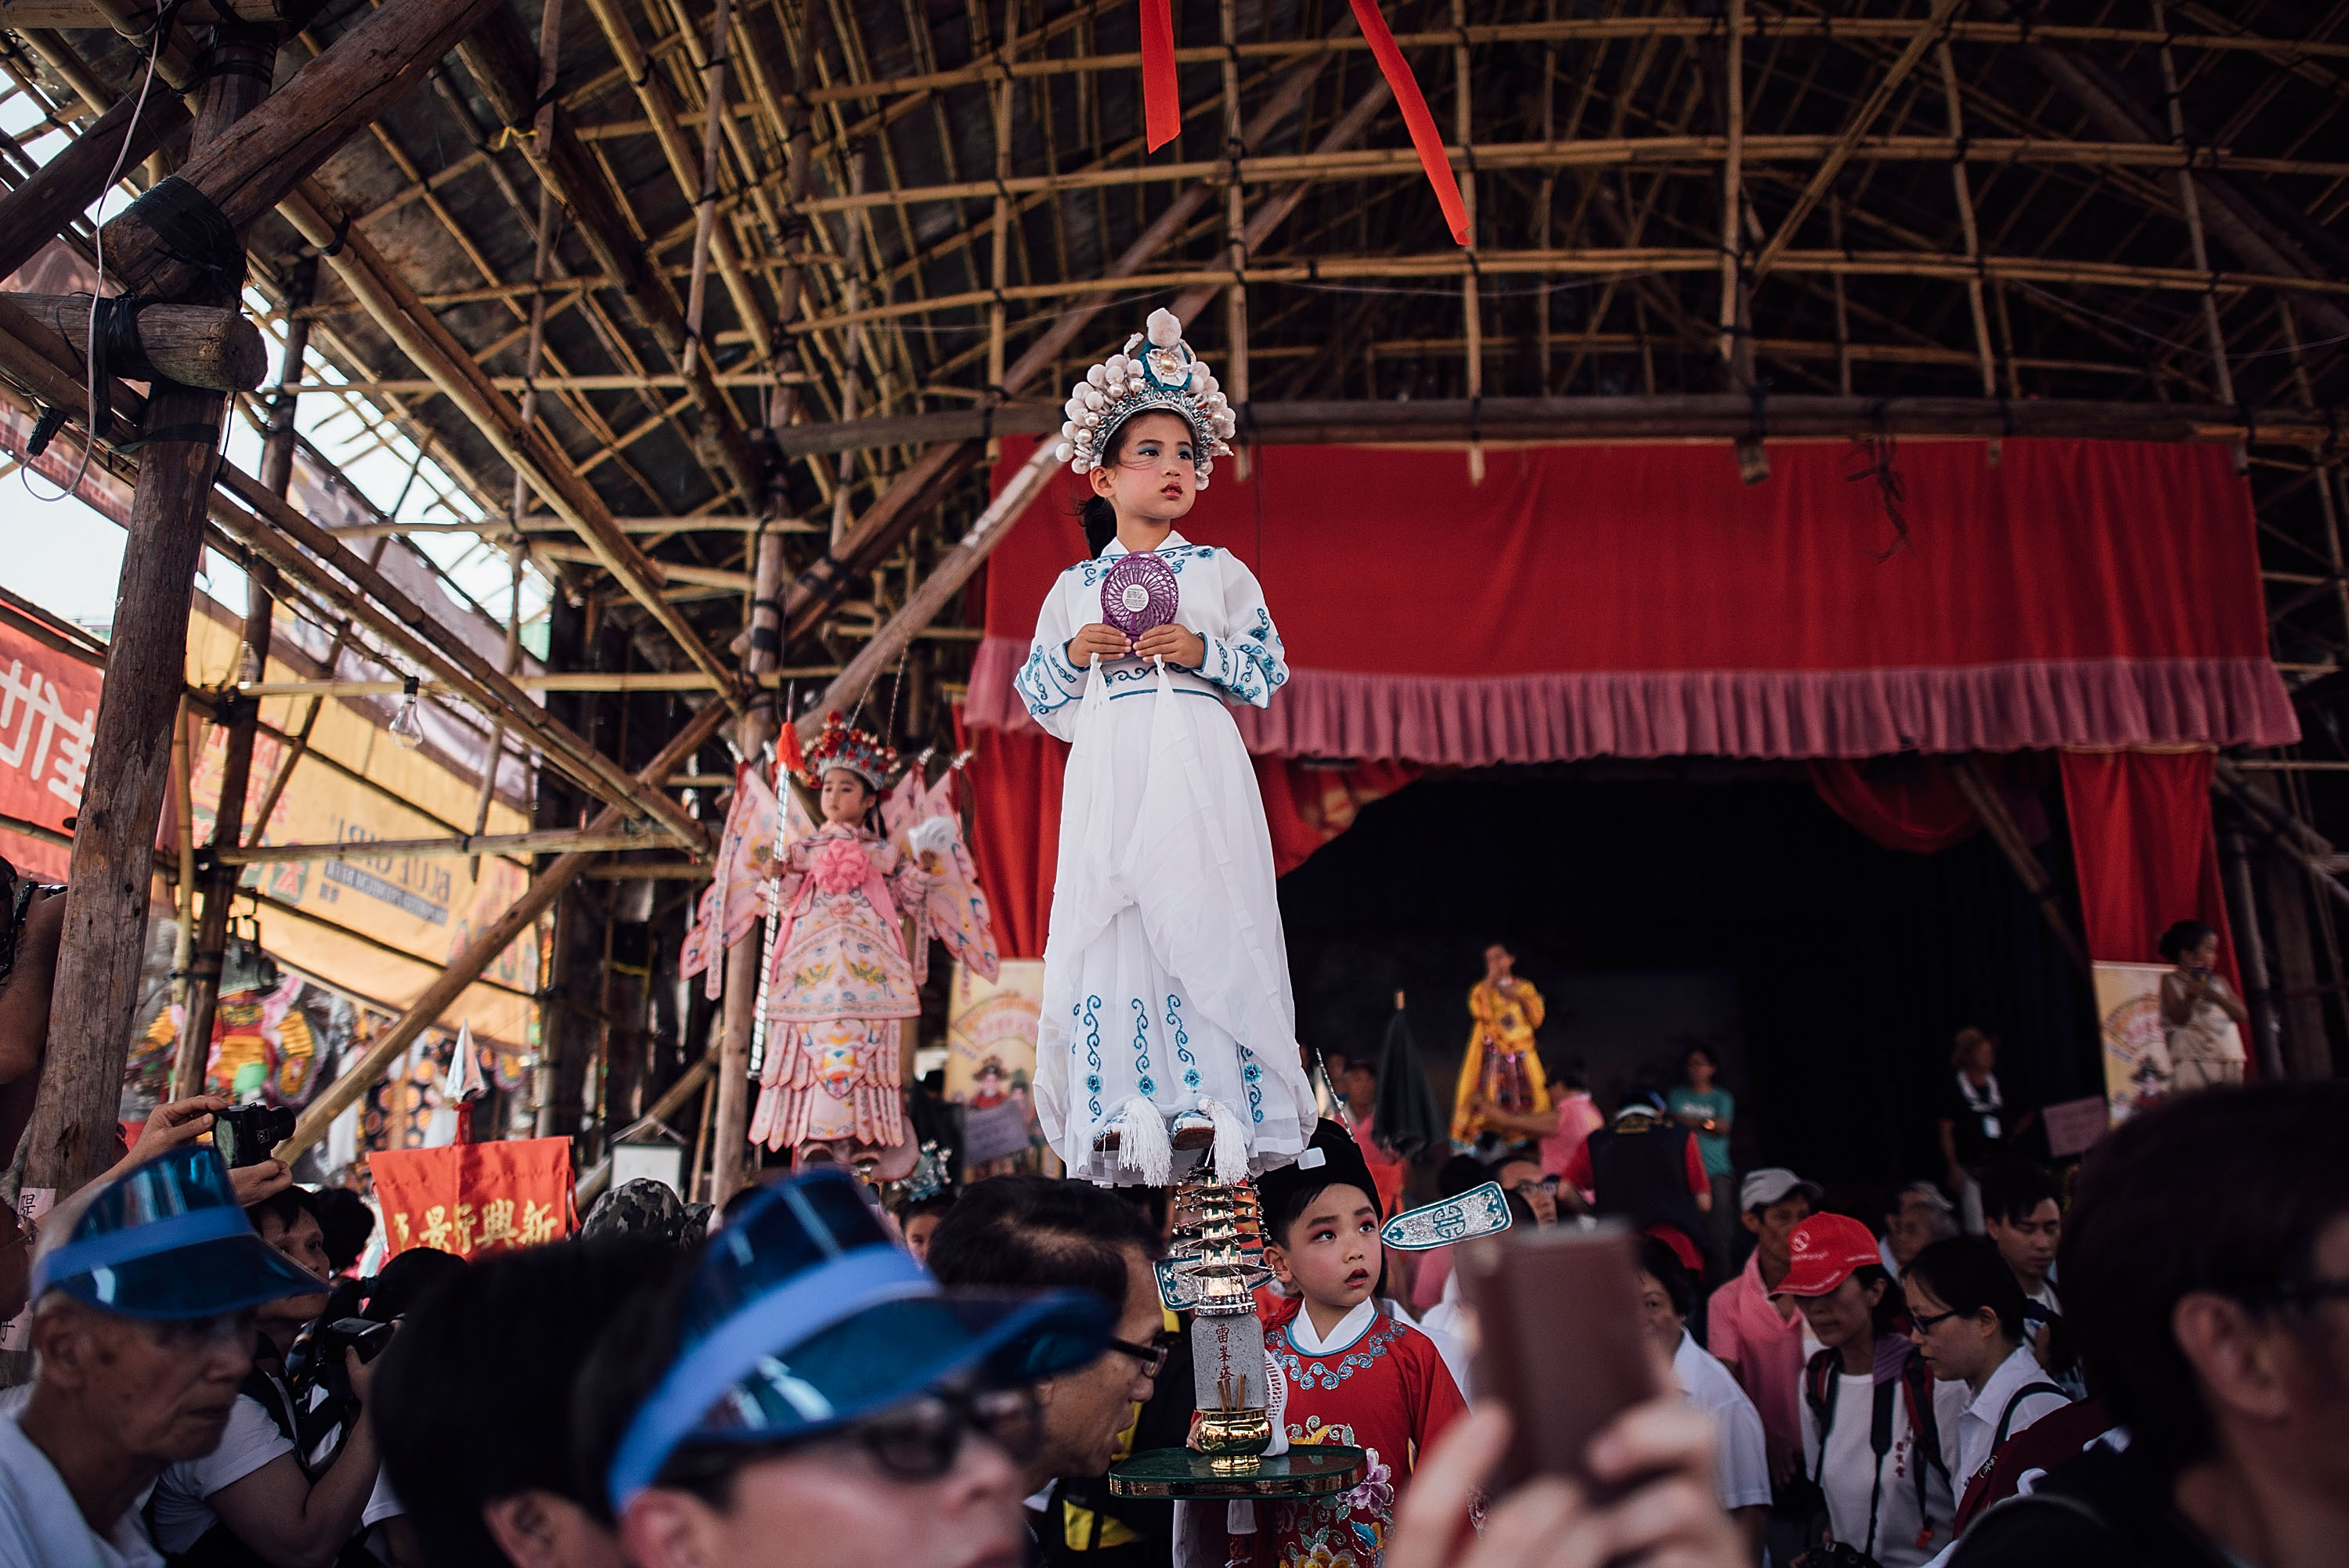 HONG KONG - MAY 25:  Children dressed in costumes perform on floats during Piu Sik (Floating Colours) Parade at Bun Festival in Cheung Chau Island on May 25, 2015 in Hong Kong. One of Hong Kong's most colourful cultural celebration events, Cheung Chau Bun Festival, will be staged on 25 May 2015 (Monday) until 26th May 2015 midnight (Tuesday). The festival has over 100 years of history. Every year, thousands of people descend upon the tiny island for The Piu Sik (Floating Colours) Parade, Lucky Bun (Ping On Bun) and The Bun Scrambling Competition, the ancient custom during the festival. The tradition has been passed down for generations. To ensure the tradition keeps passing on, every year, Cheung Chau Islanders fuse the new elements with the custom to draw the attention from the young. This year, 'K-Pop stars' will be featured by one of the Piu Sik parade teams, the first-ever 'Ping On (Lucky) Macaron' with Chinese tea favour is invented, and more to be found out on the island.  (Photo by Anthony Kwan/Getty Images for Hong Kong Images)